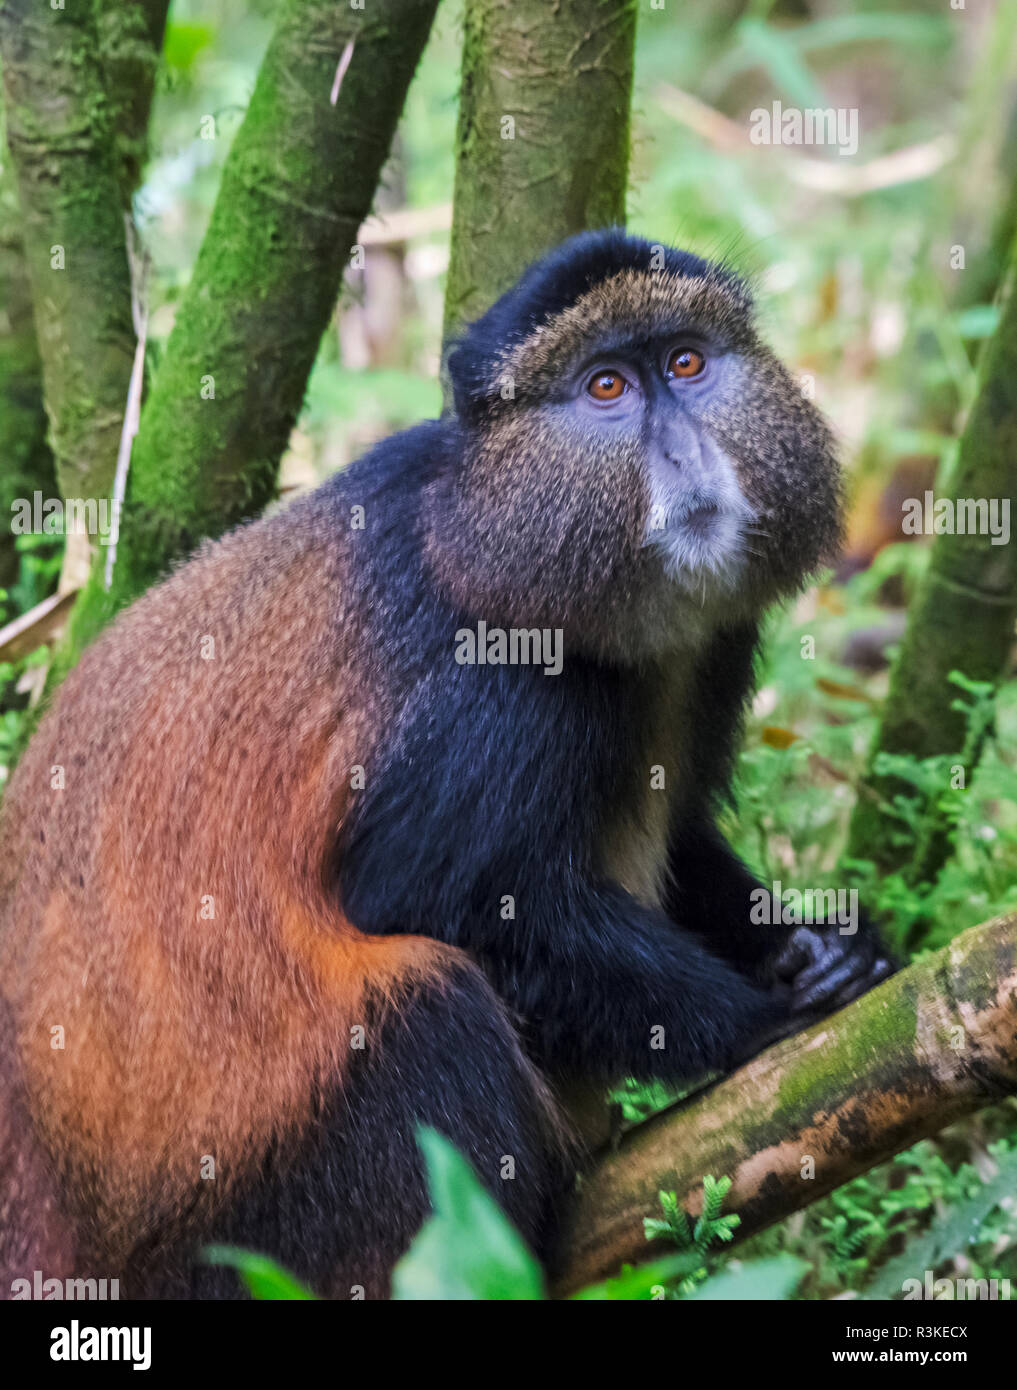 Golden Monkey (Cercopithecus Mitis Kandti) in the bamboo forest, Parc National des Volcans, Rwanda - Stock Image